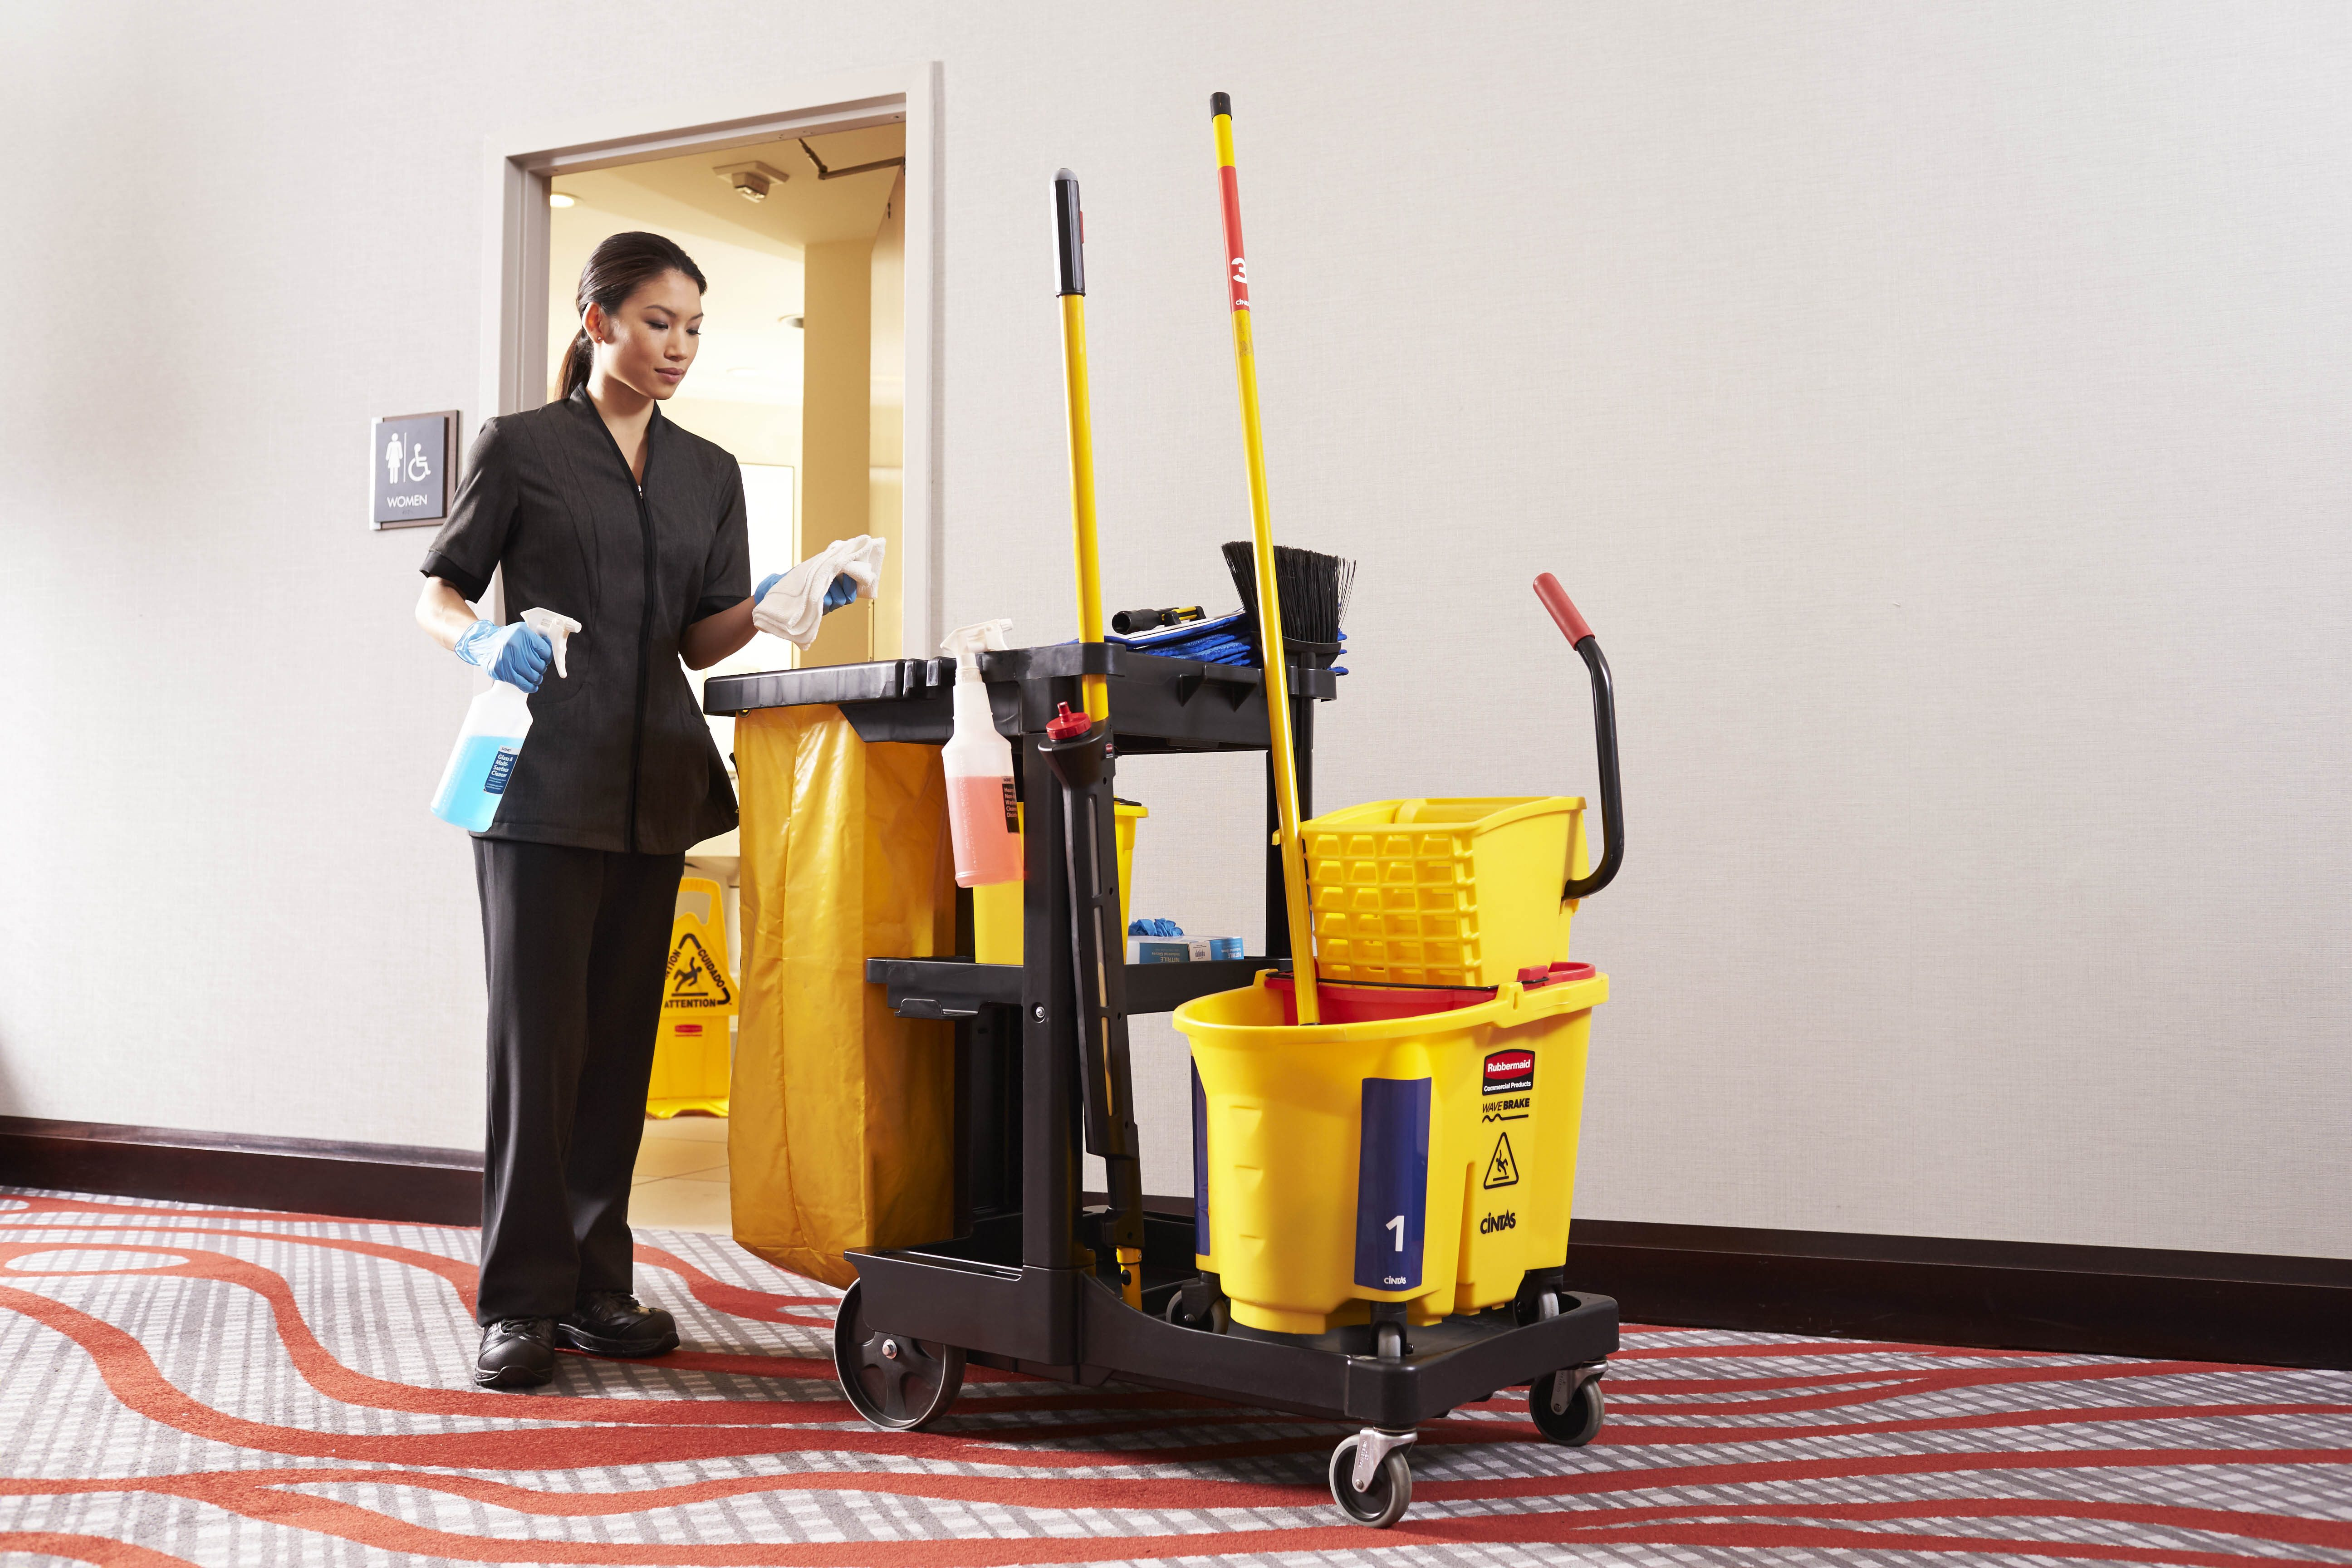 Woman in a black housekeeping uniform holding a spreay bottle by a janitorial supplies cart